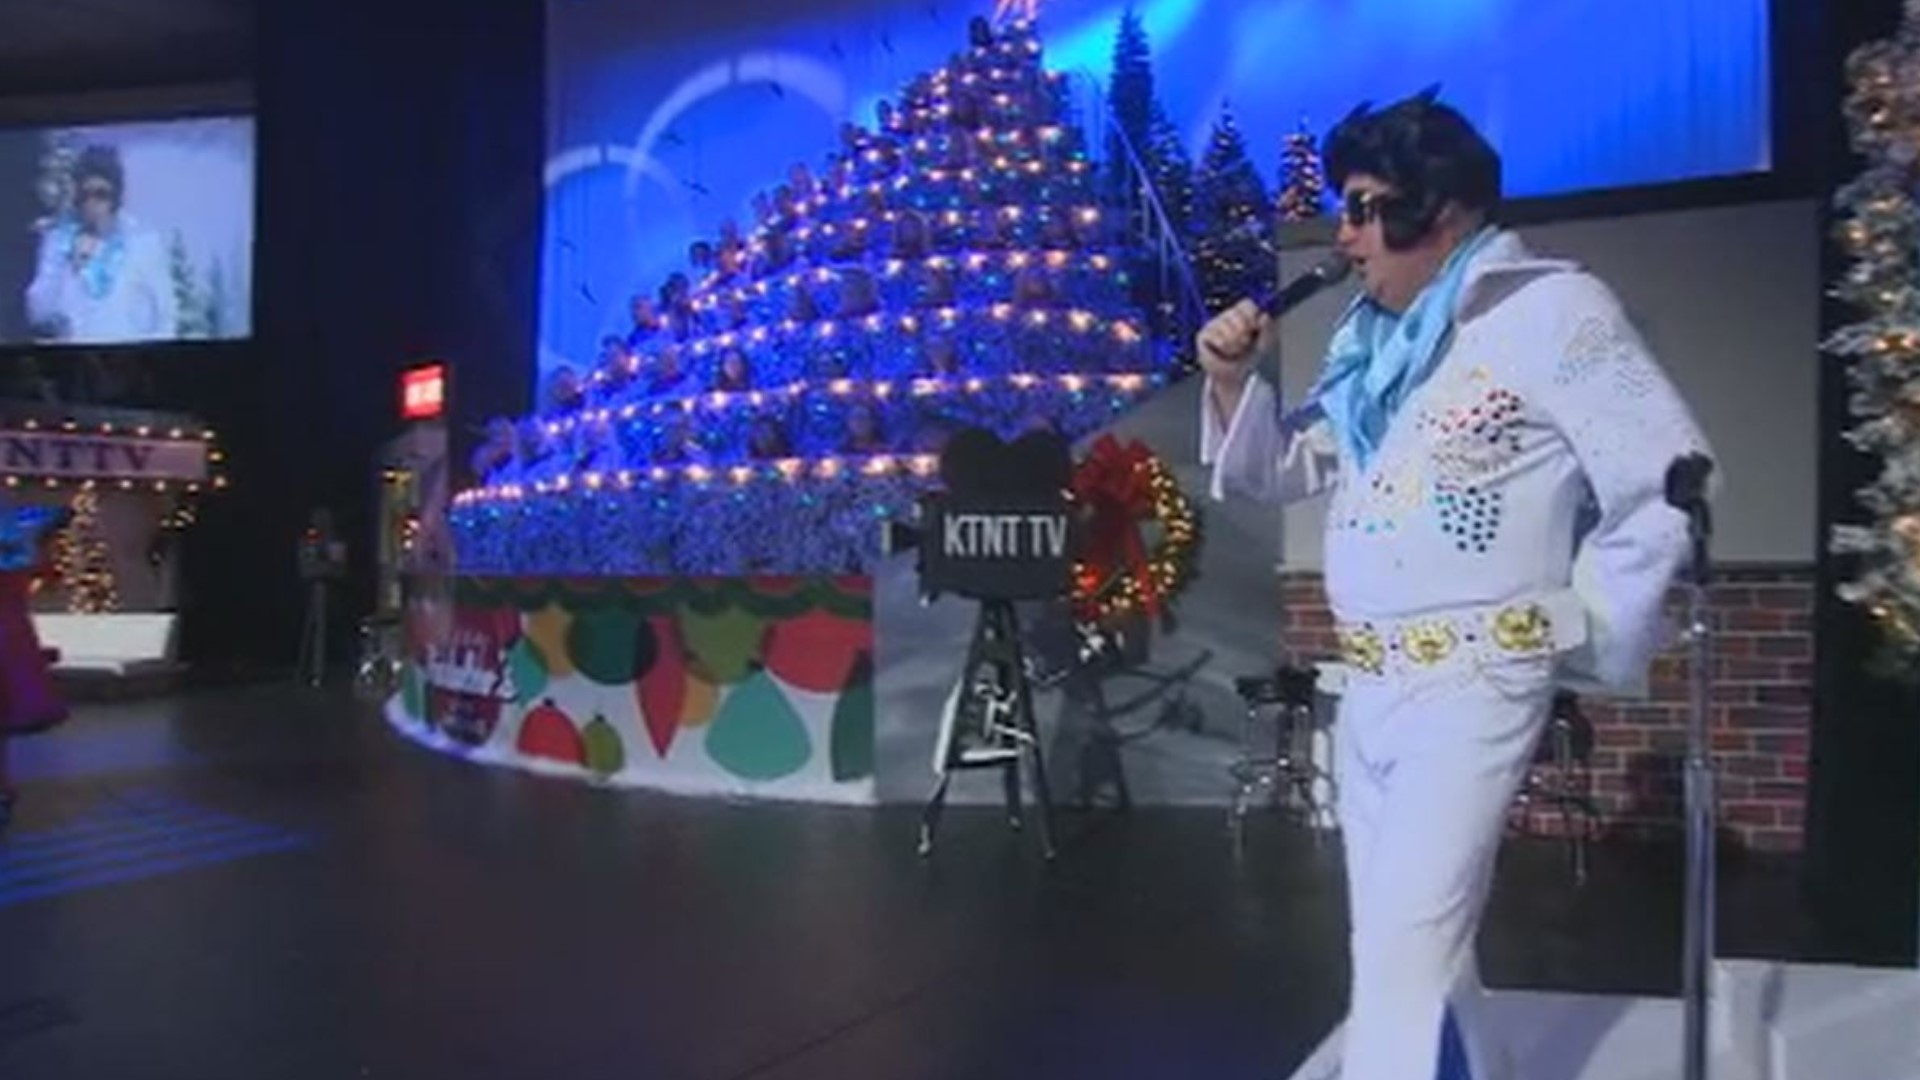 Christmas Performance For Families 2020 Tacoma Washington Elvis spotted at Singing Christmas Tree in Tacoma   king5.com